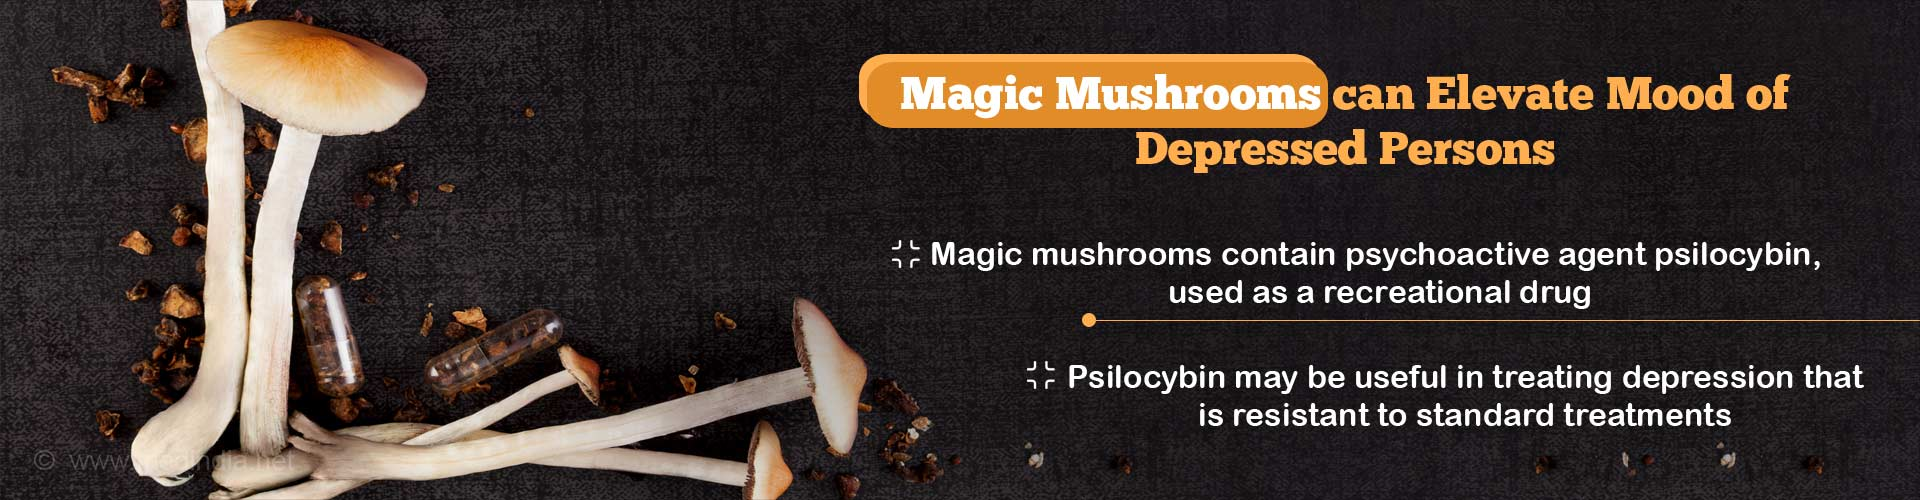 Magic Mushrooms May Help Lift Persons From Depressed Mood